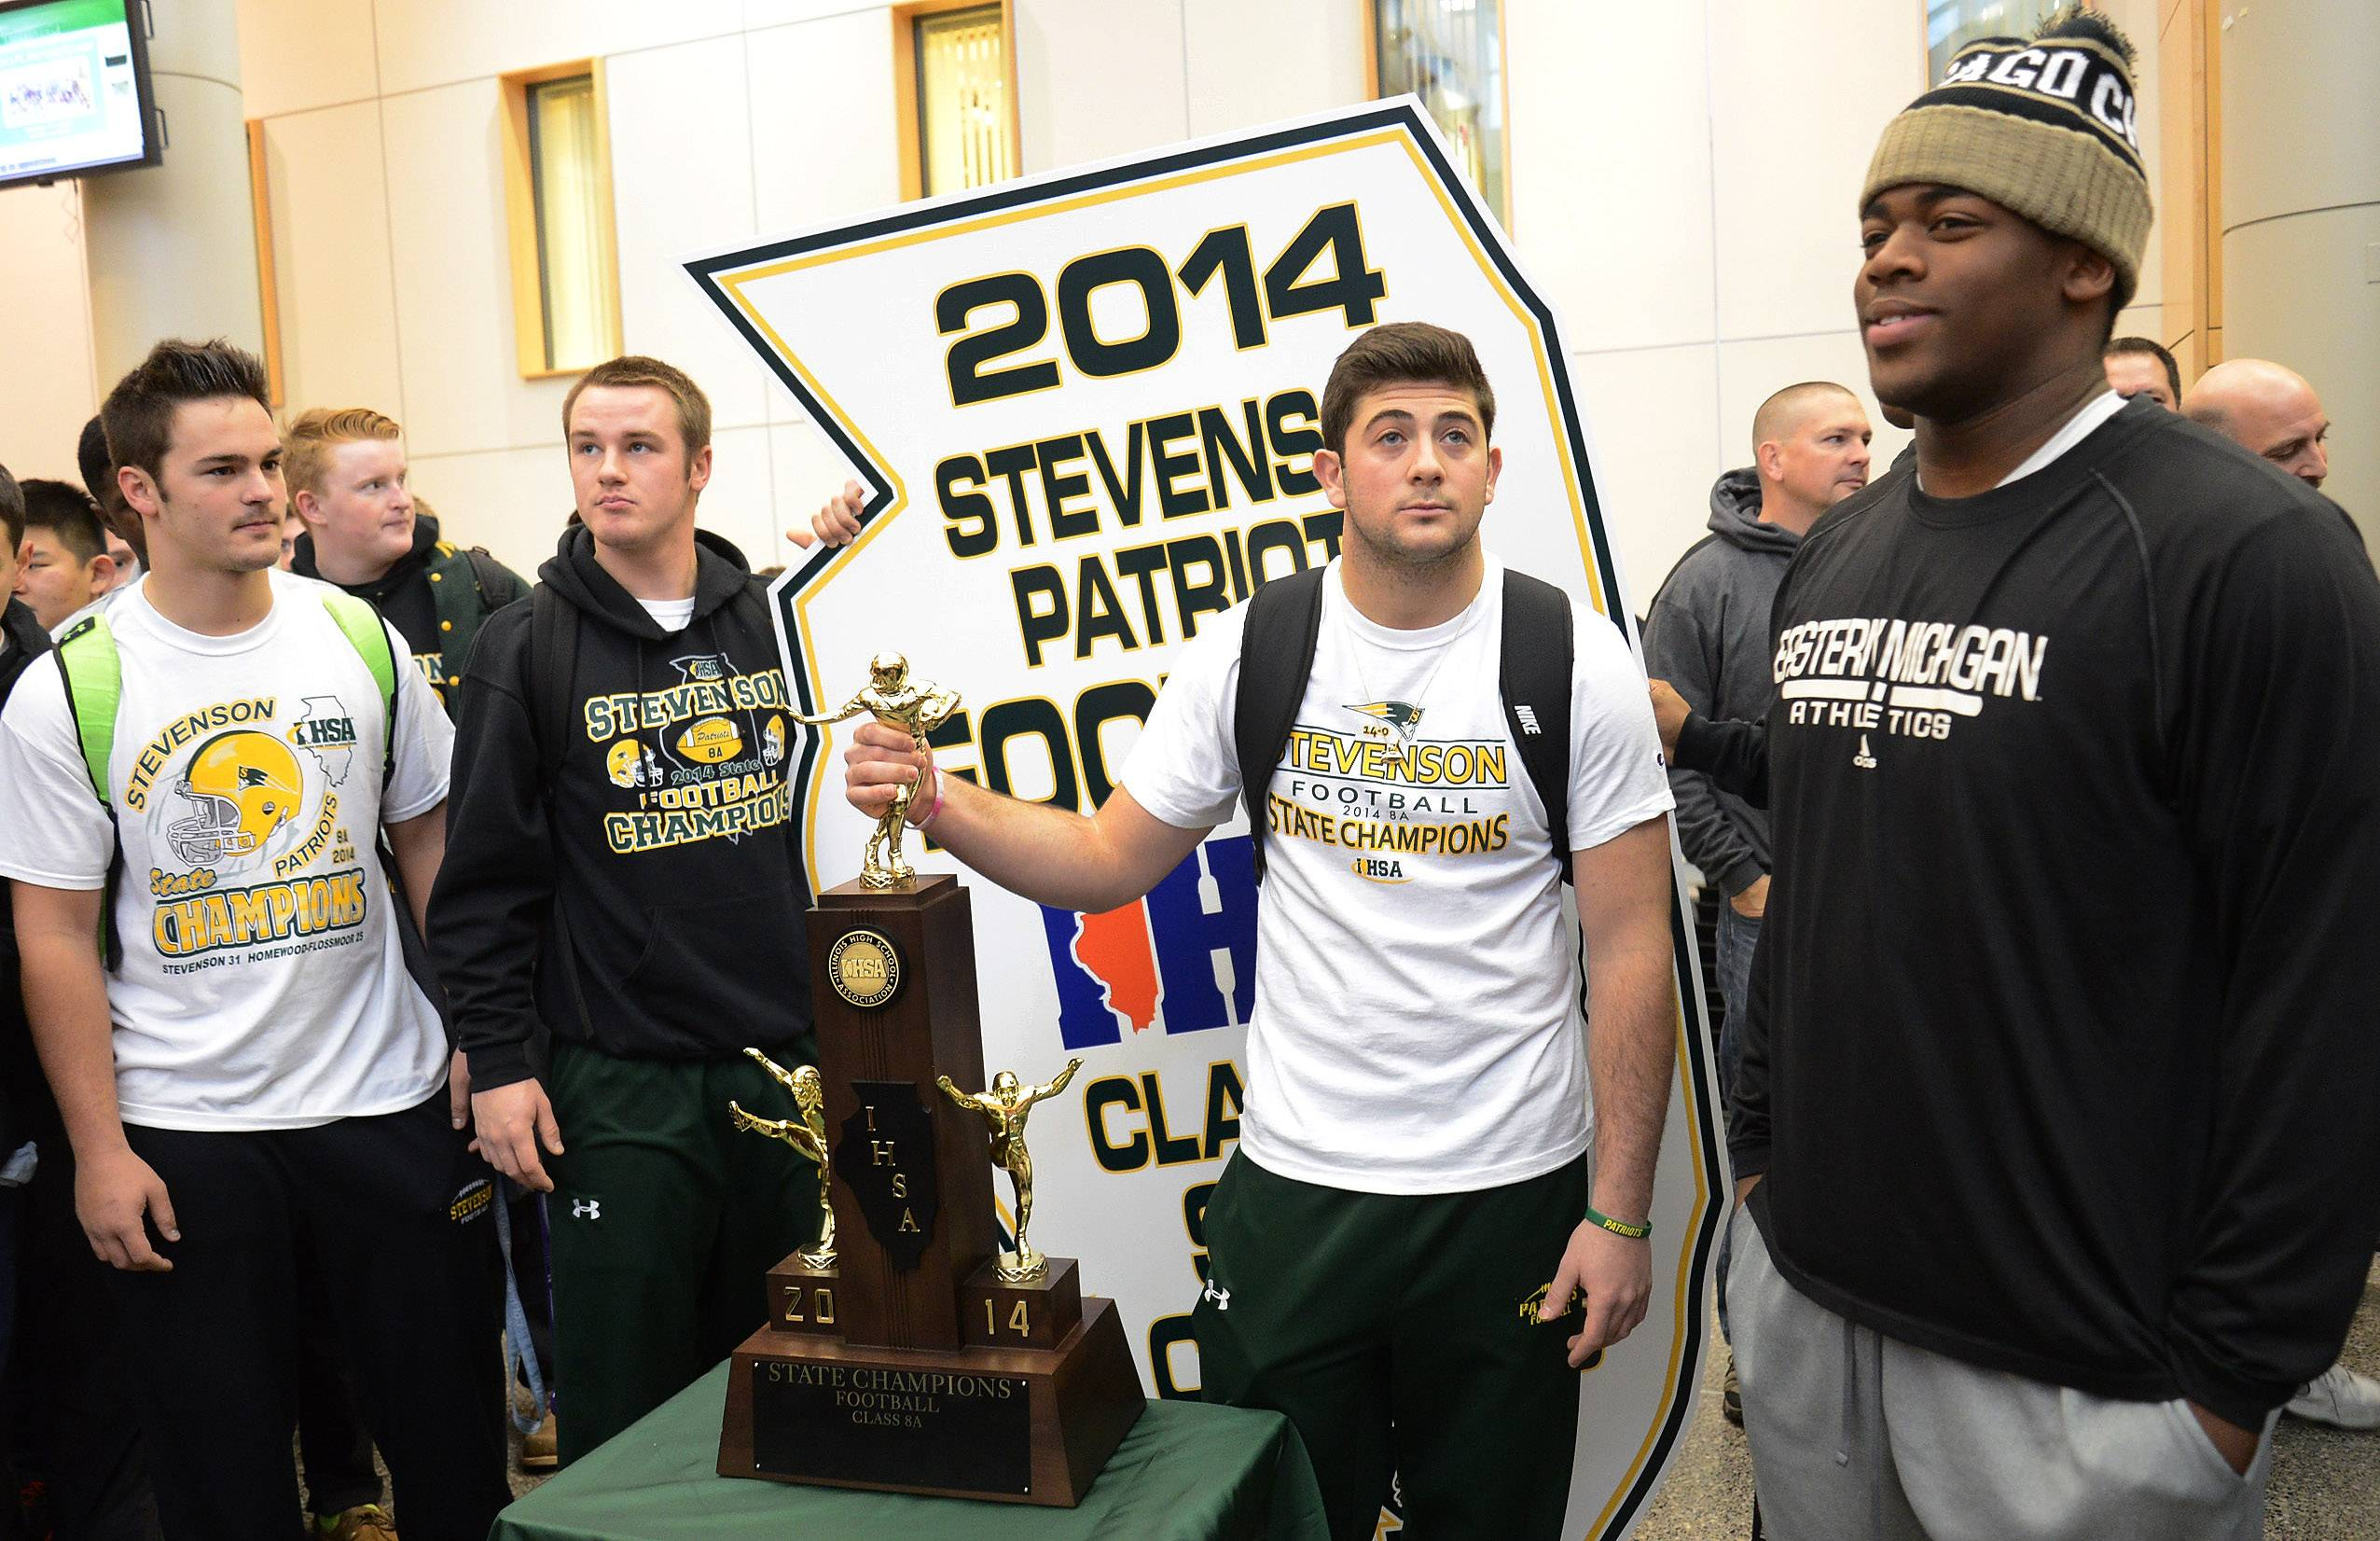 From left seniors, Jason Vravick, Willie Bourbon, Jack Joseph and Nick Dillon pose with trophy and state plaque as Stevenson High School celebrates winning the state Class 8A football championship.